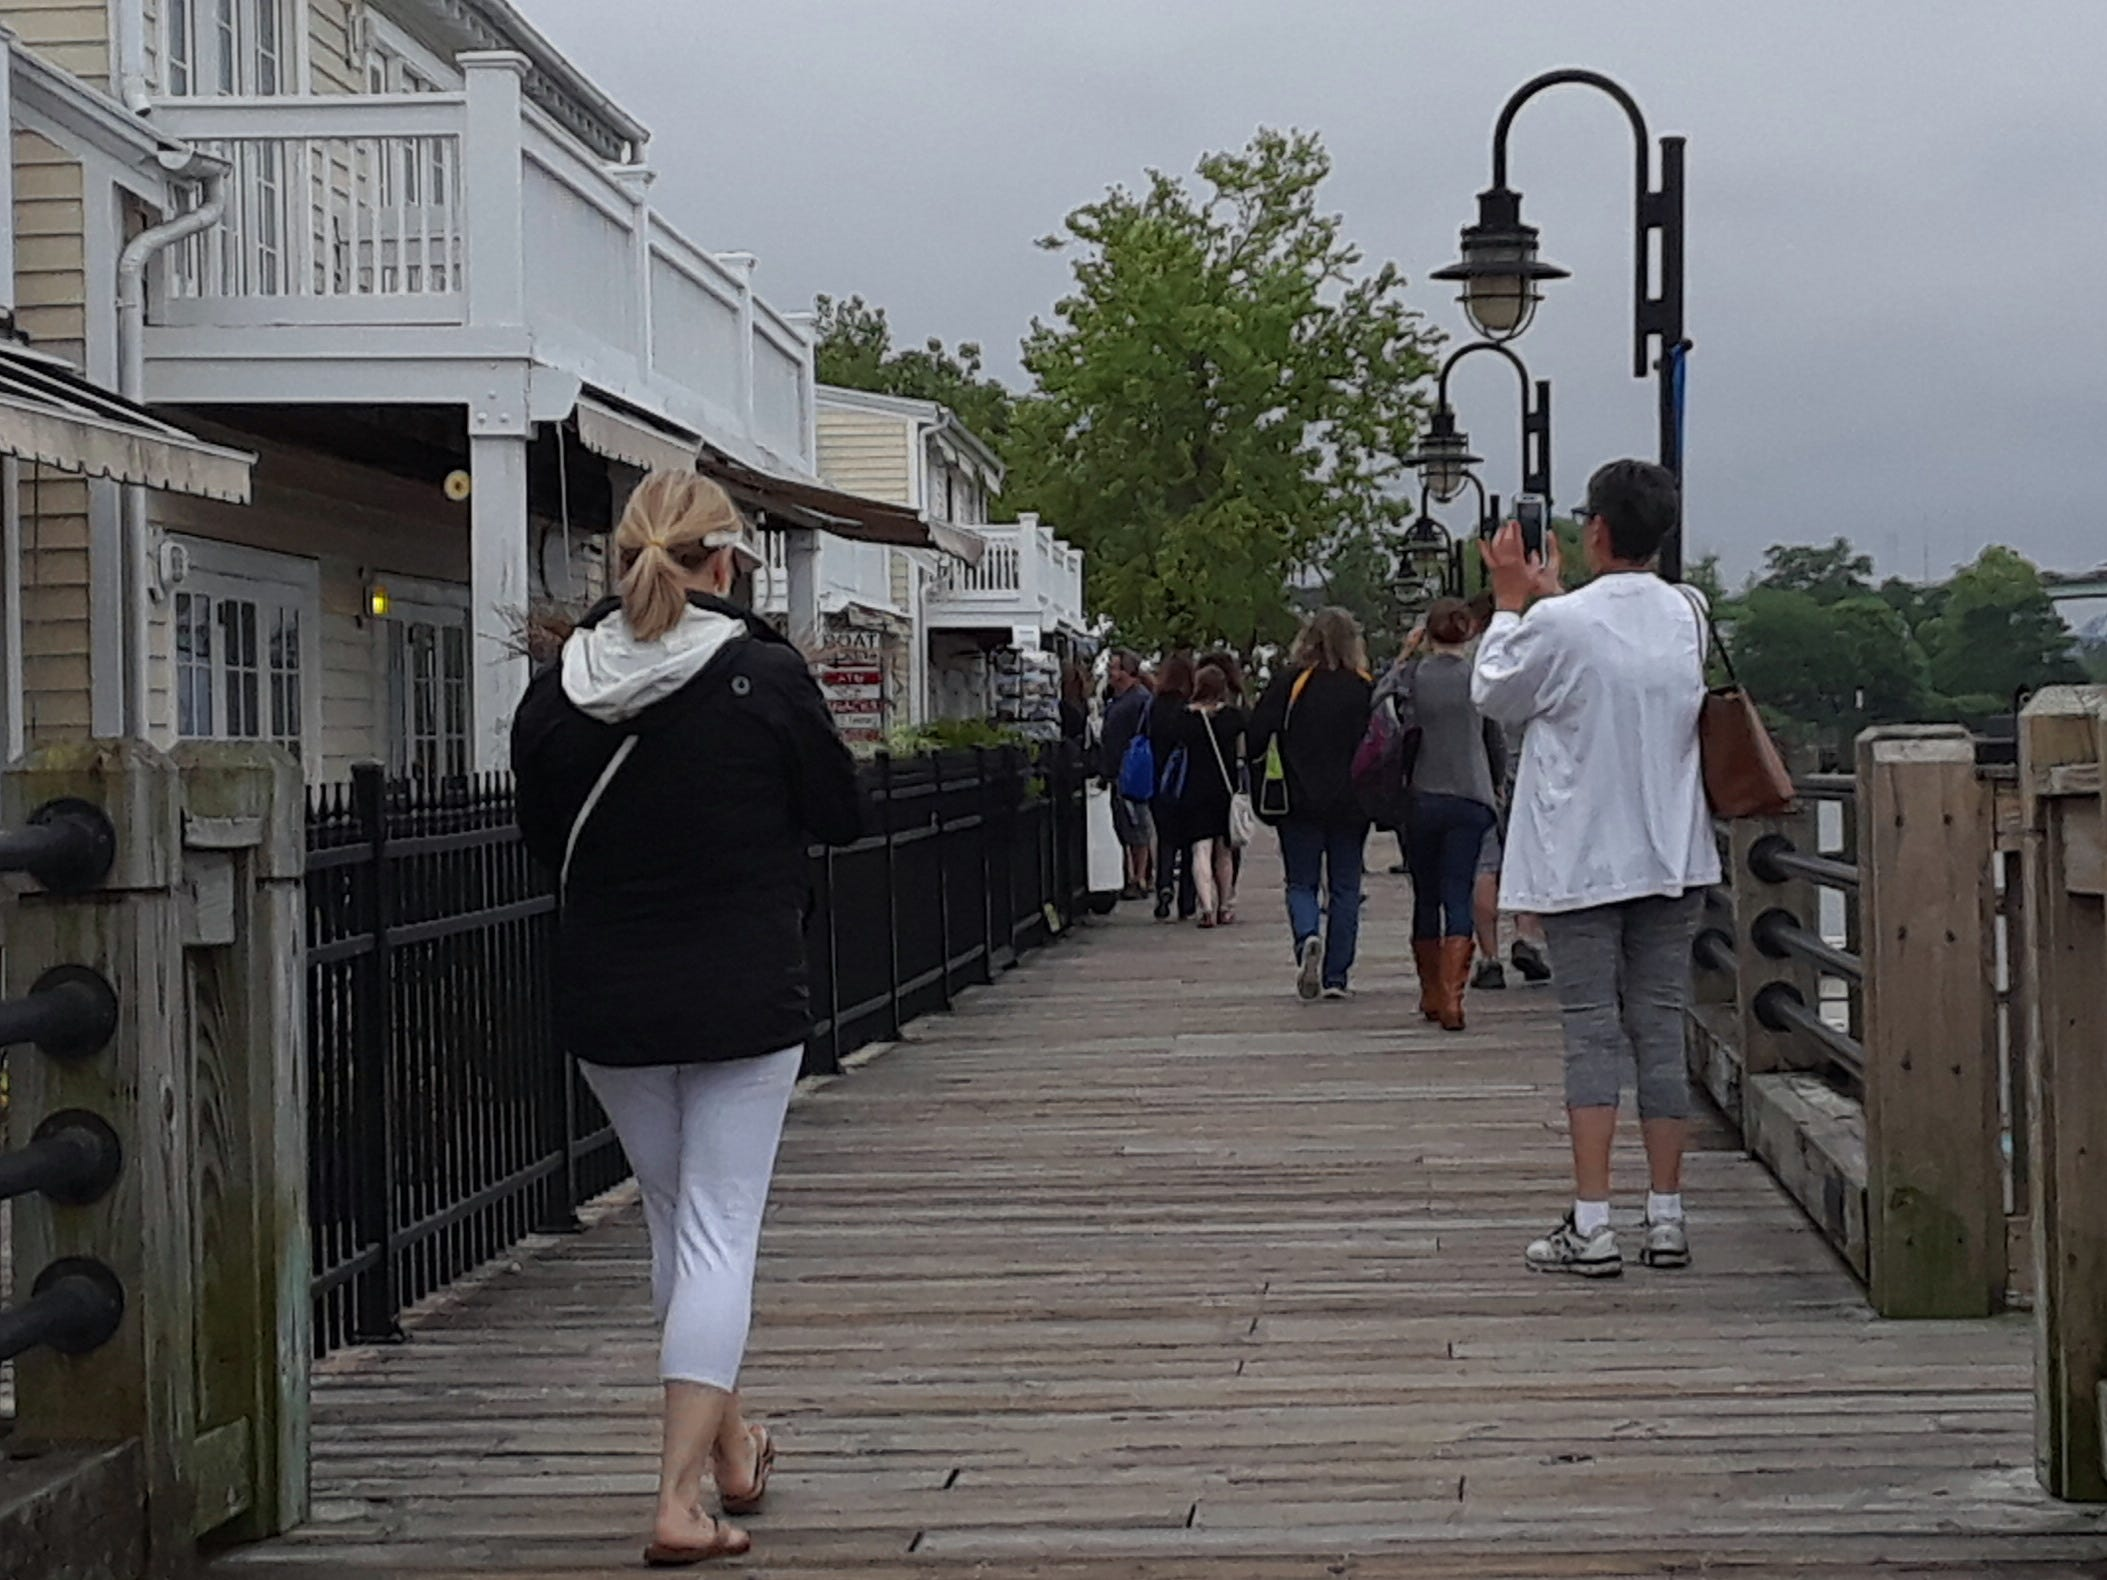 The downtown riverwalk rivals the beaches as an attraction.